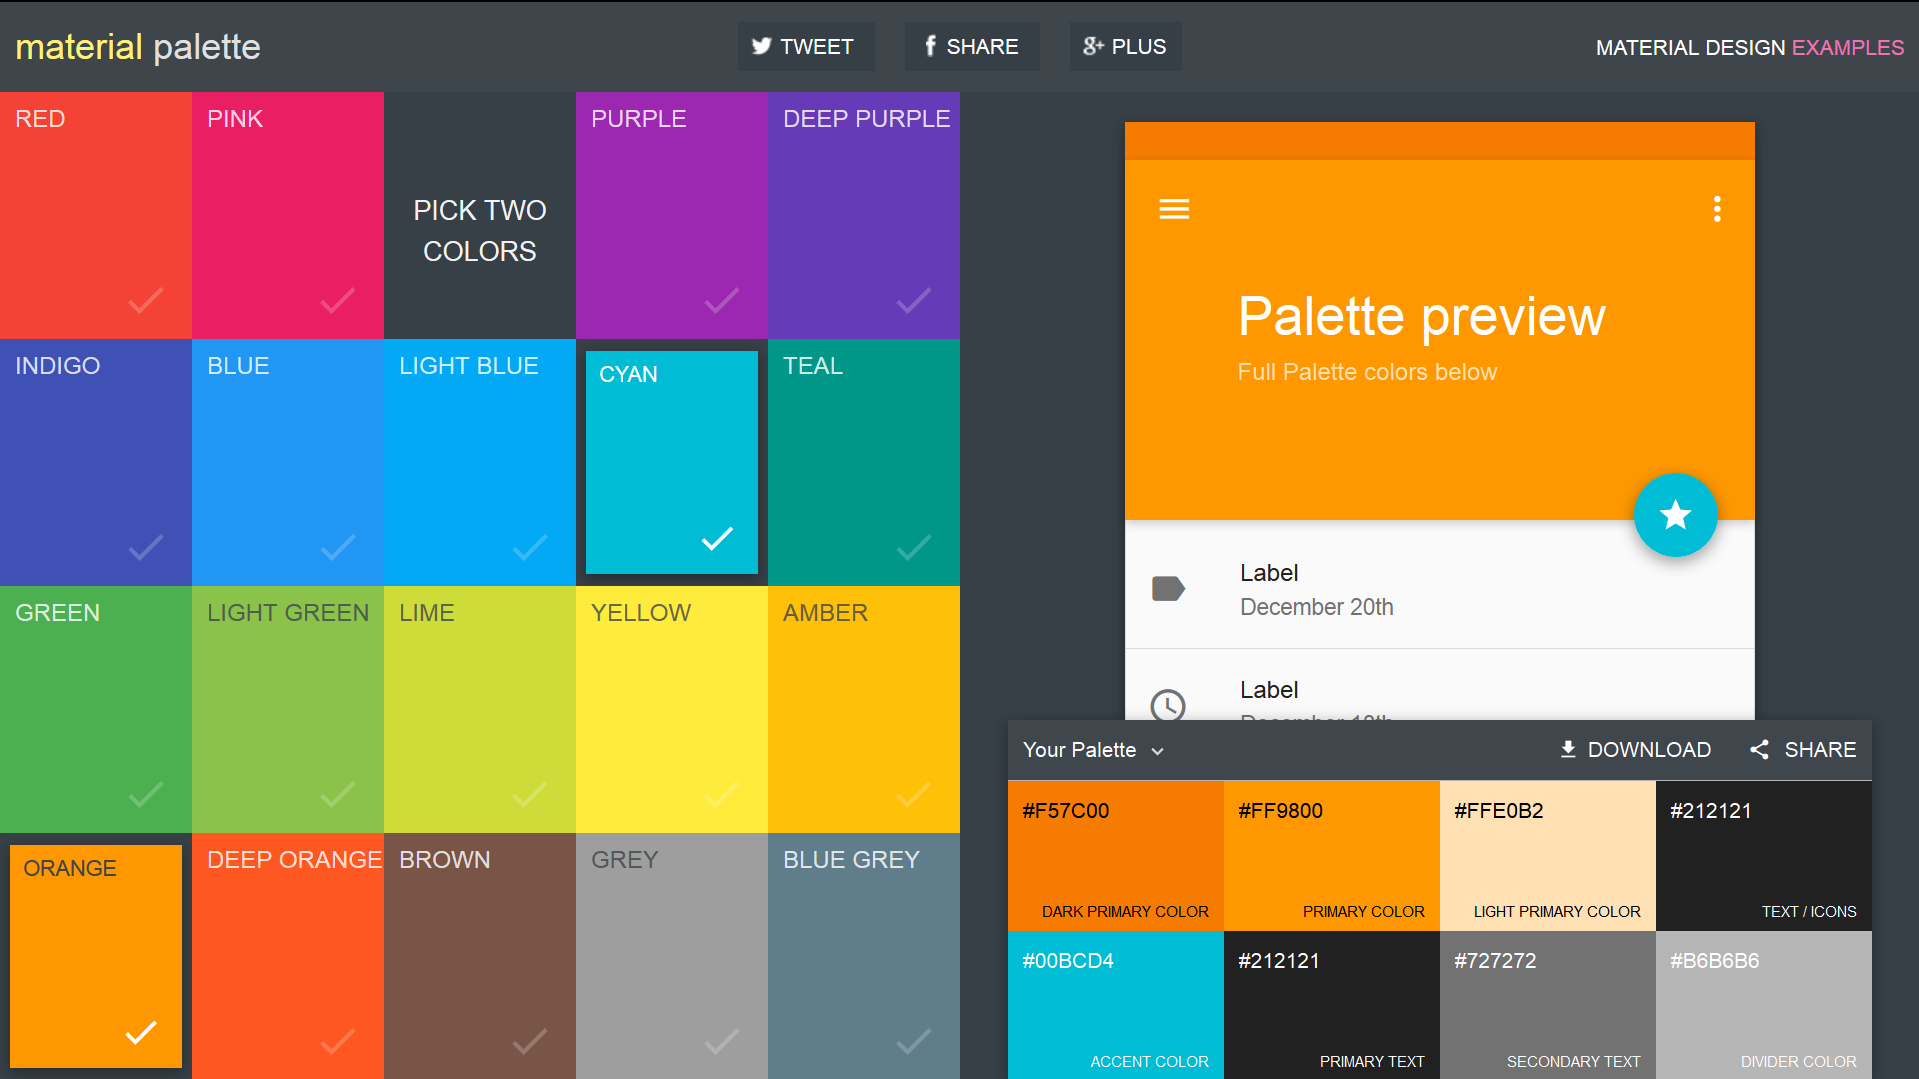 Materialpalette Material Design Color Generator Palette Preview